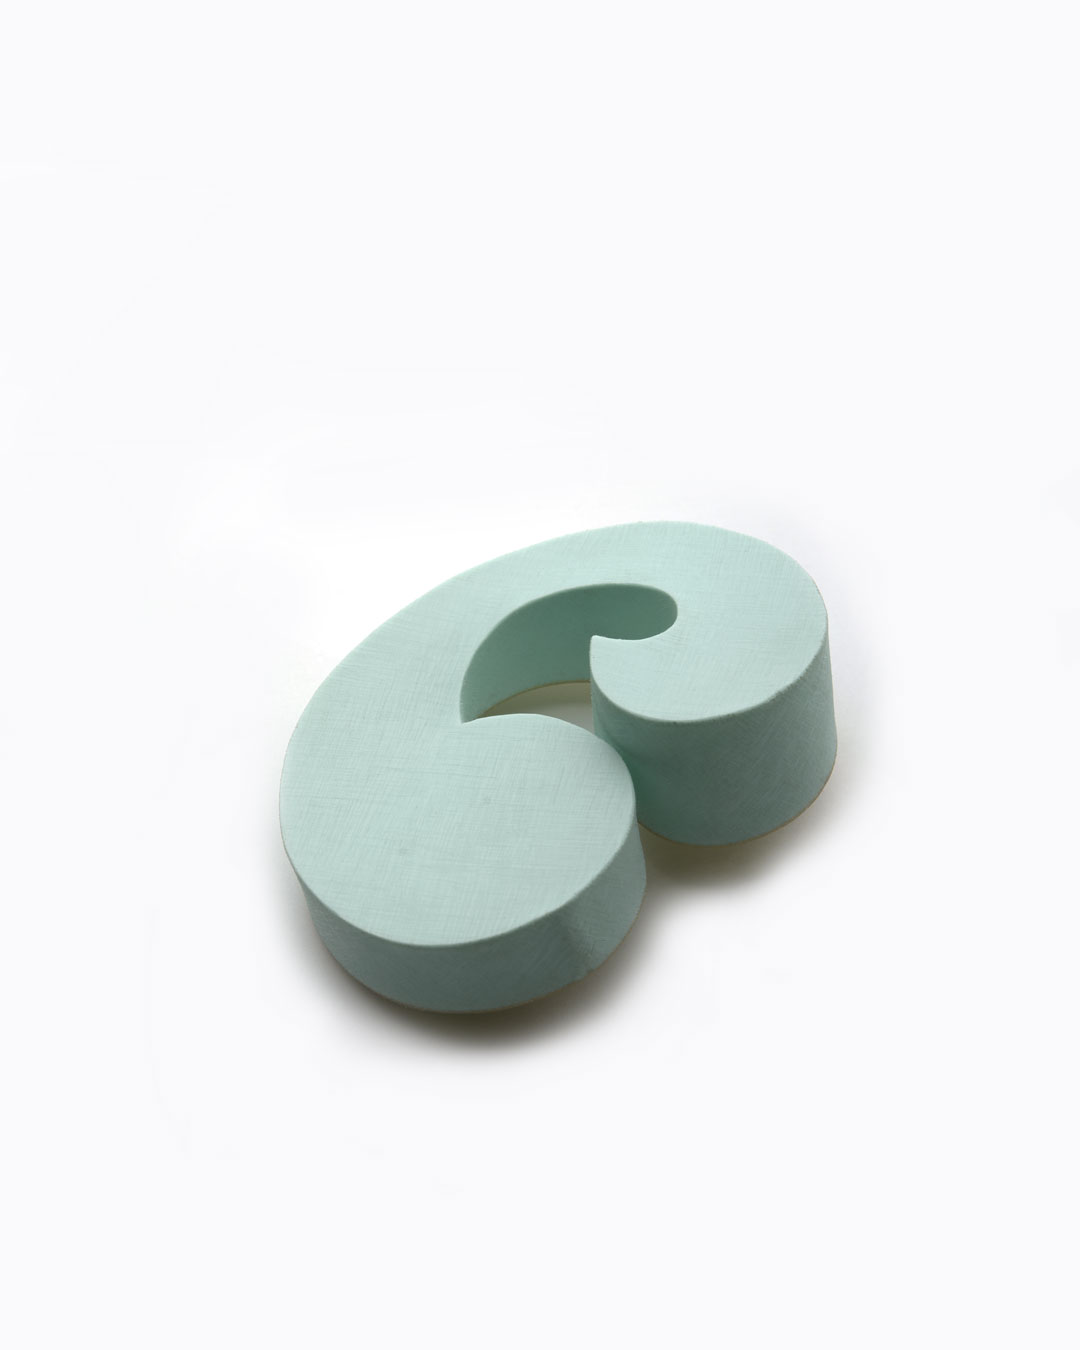 Ute Eitzenhöfer, Schnörkel 4  (Squiggle 4), 2014, brooch; plastic (from packaging), 100 x 70 x 25 mm, €1000